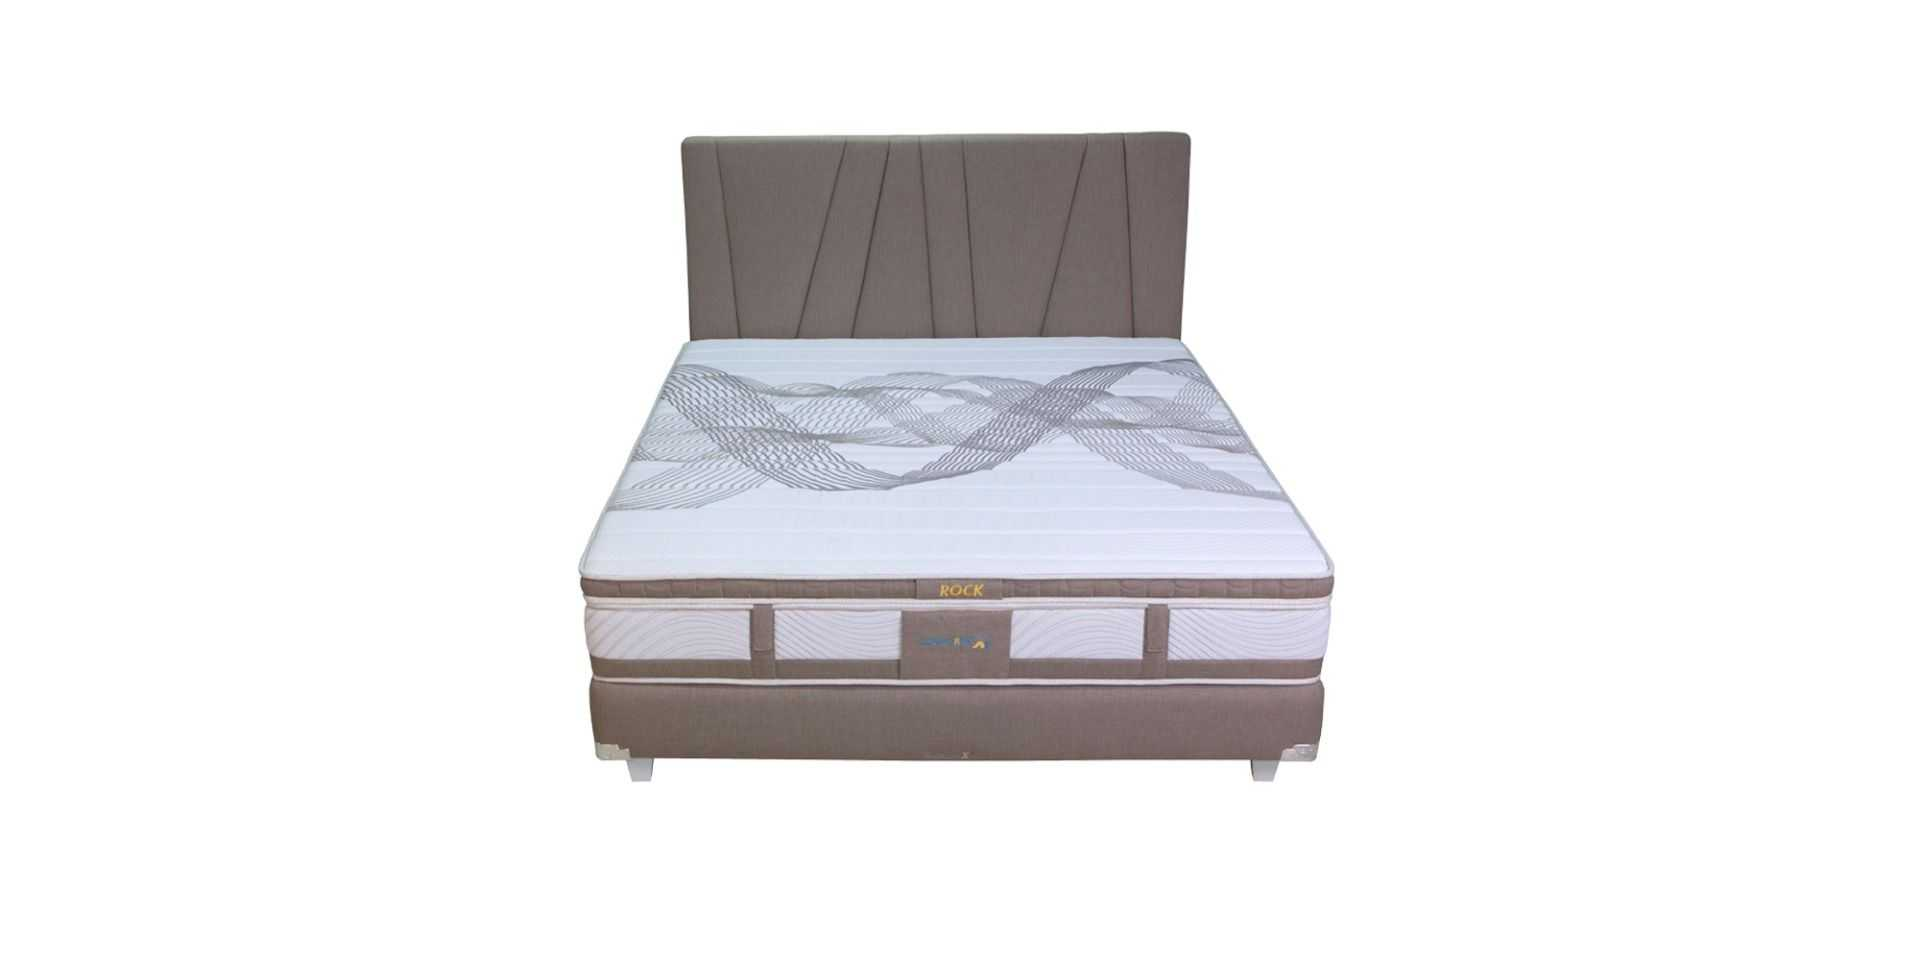 180 X 200 Beds Conforta X5 Bed Set Surface Rock King 180 X 200 Fabelio